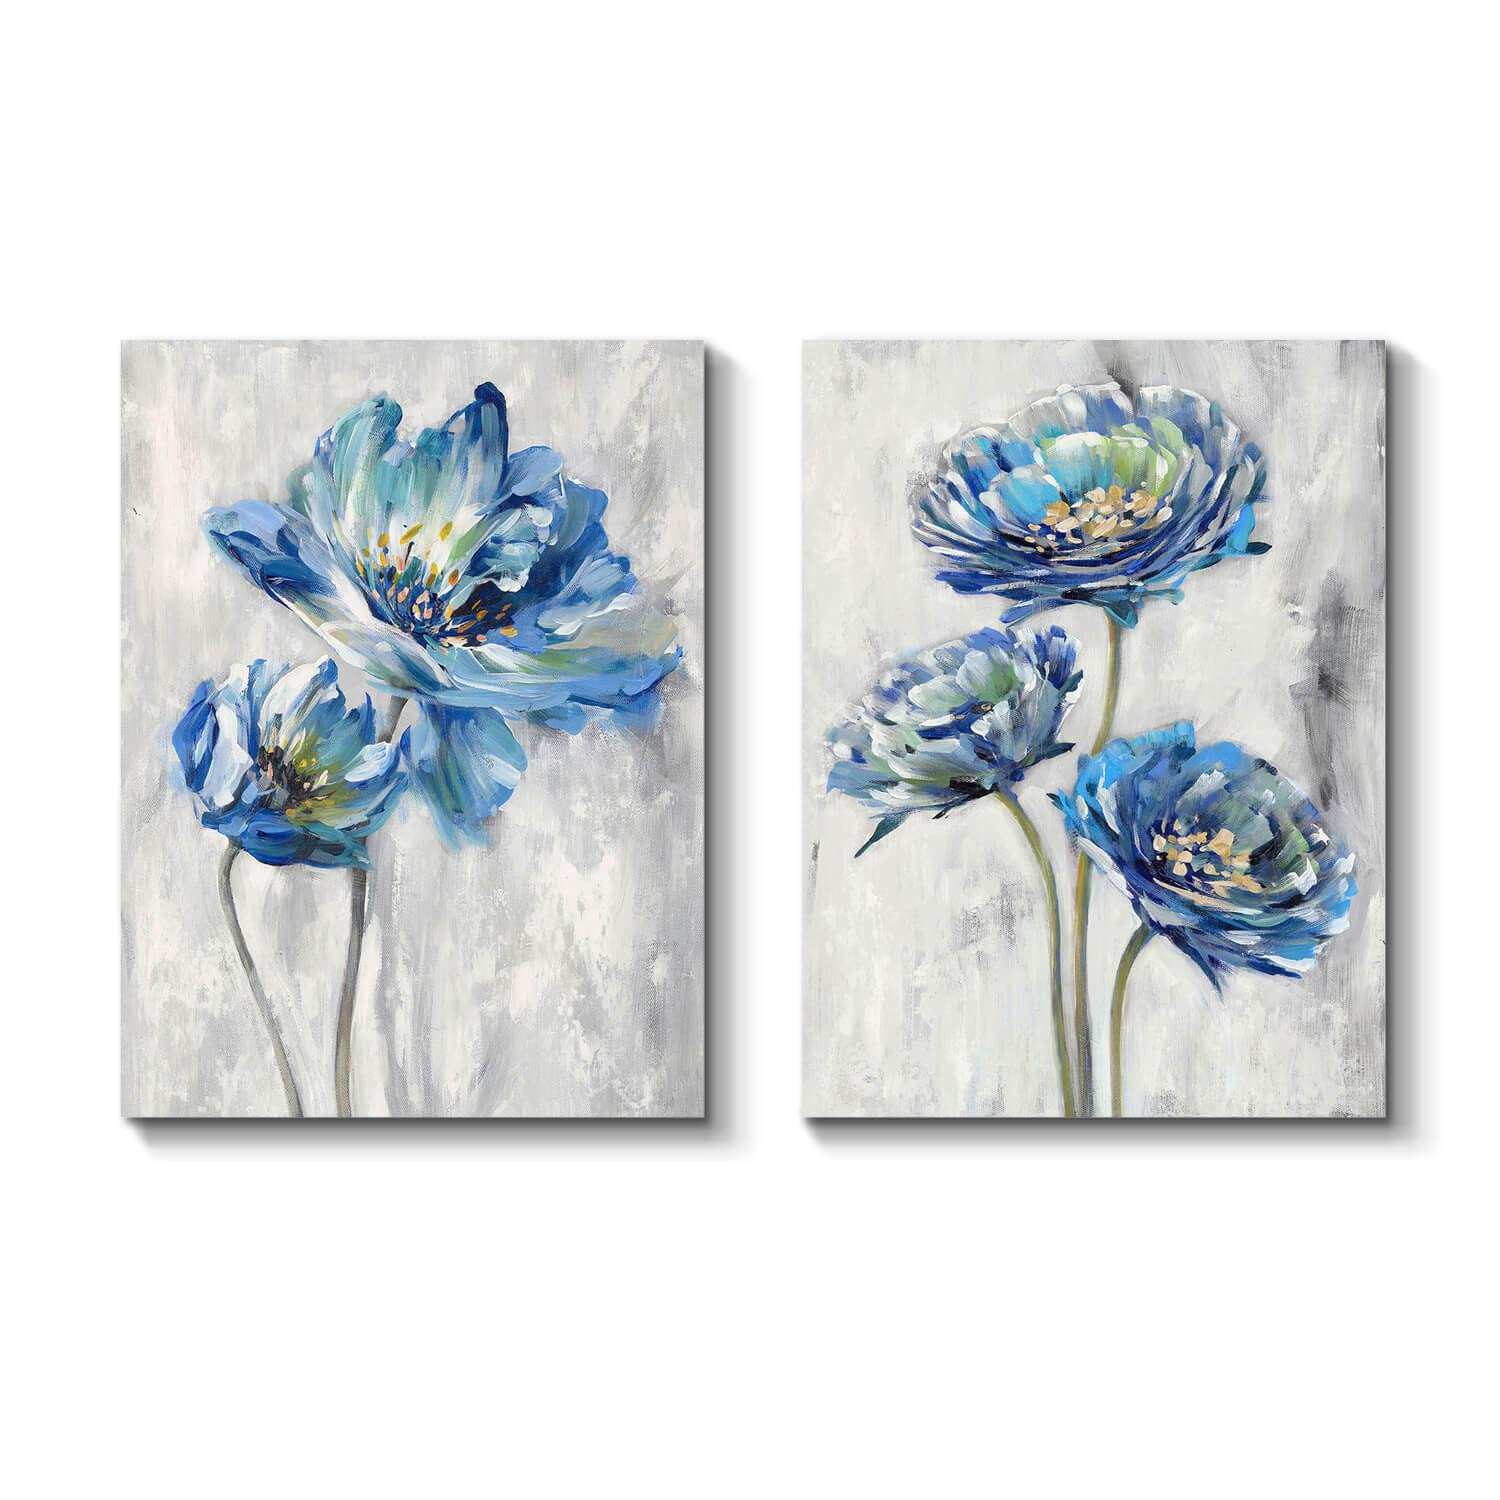 Blue Flower Artwork Canvas Picture: Floral Painting Bloom Wall Art Print on Canvas for Dining Room (16'' x 12'' x 2 Panels)